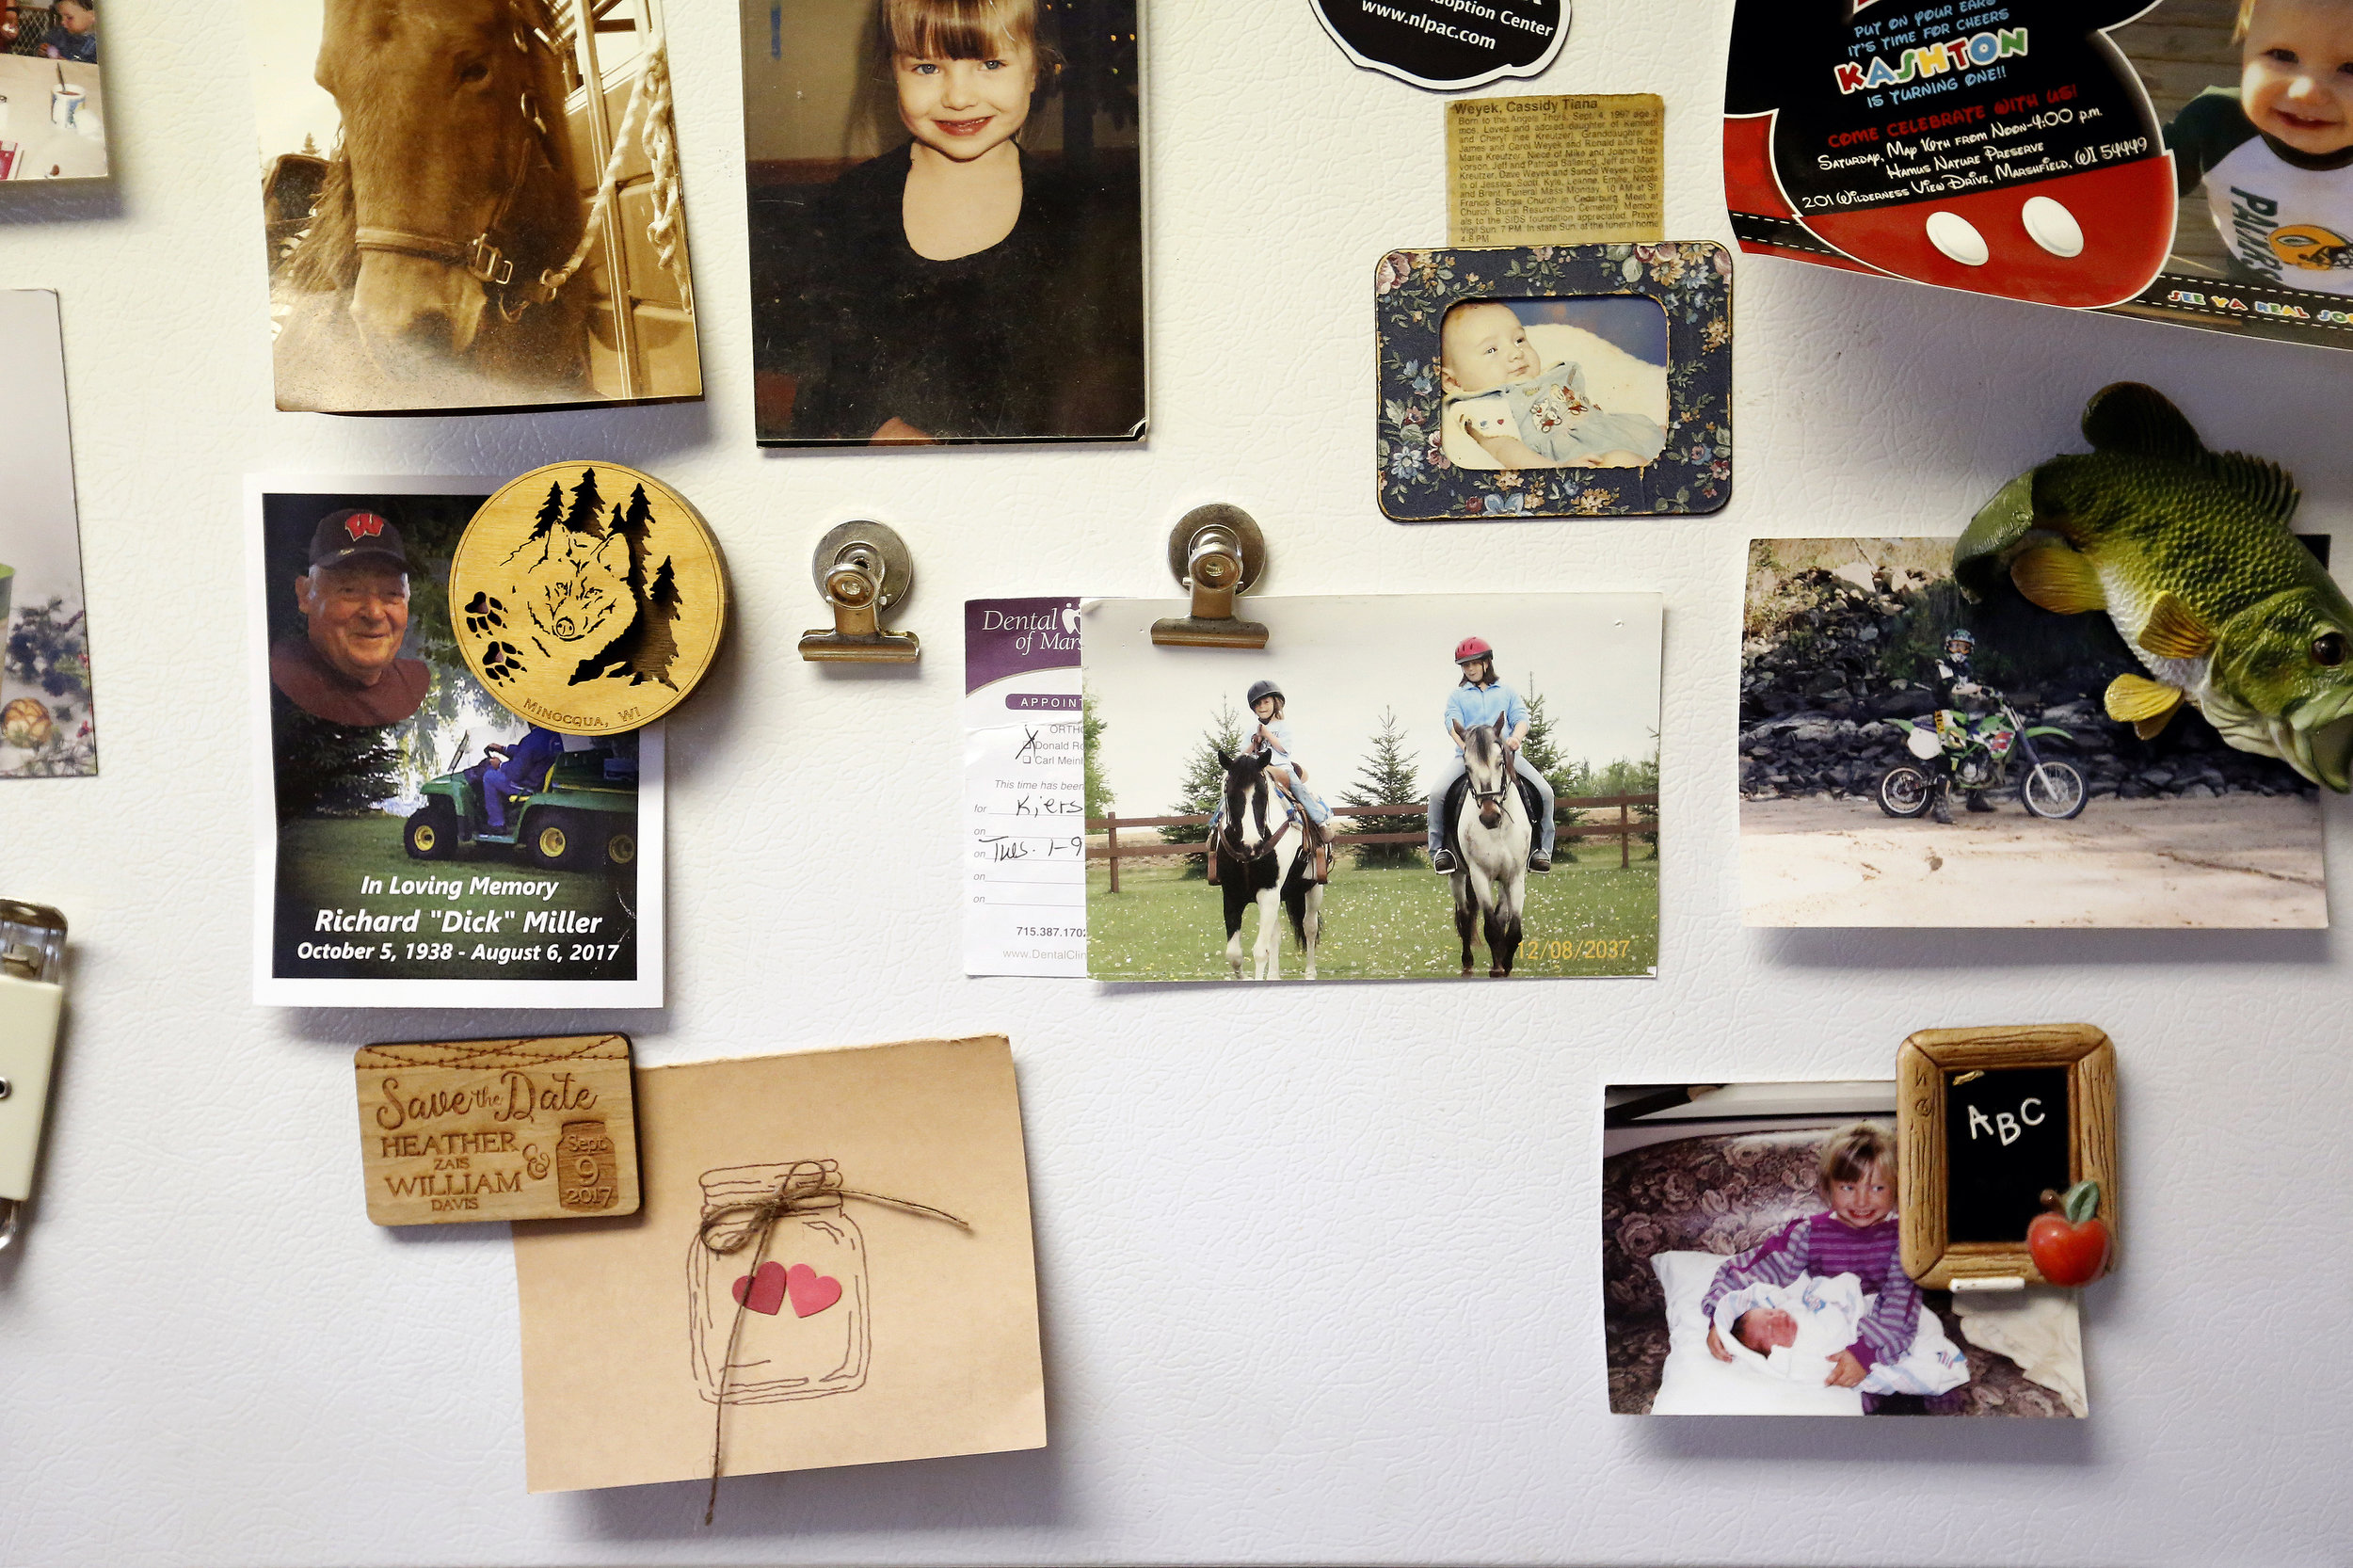 Family photos and memorabilia decorate the refrigerator in Rogowski's childhood home.